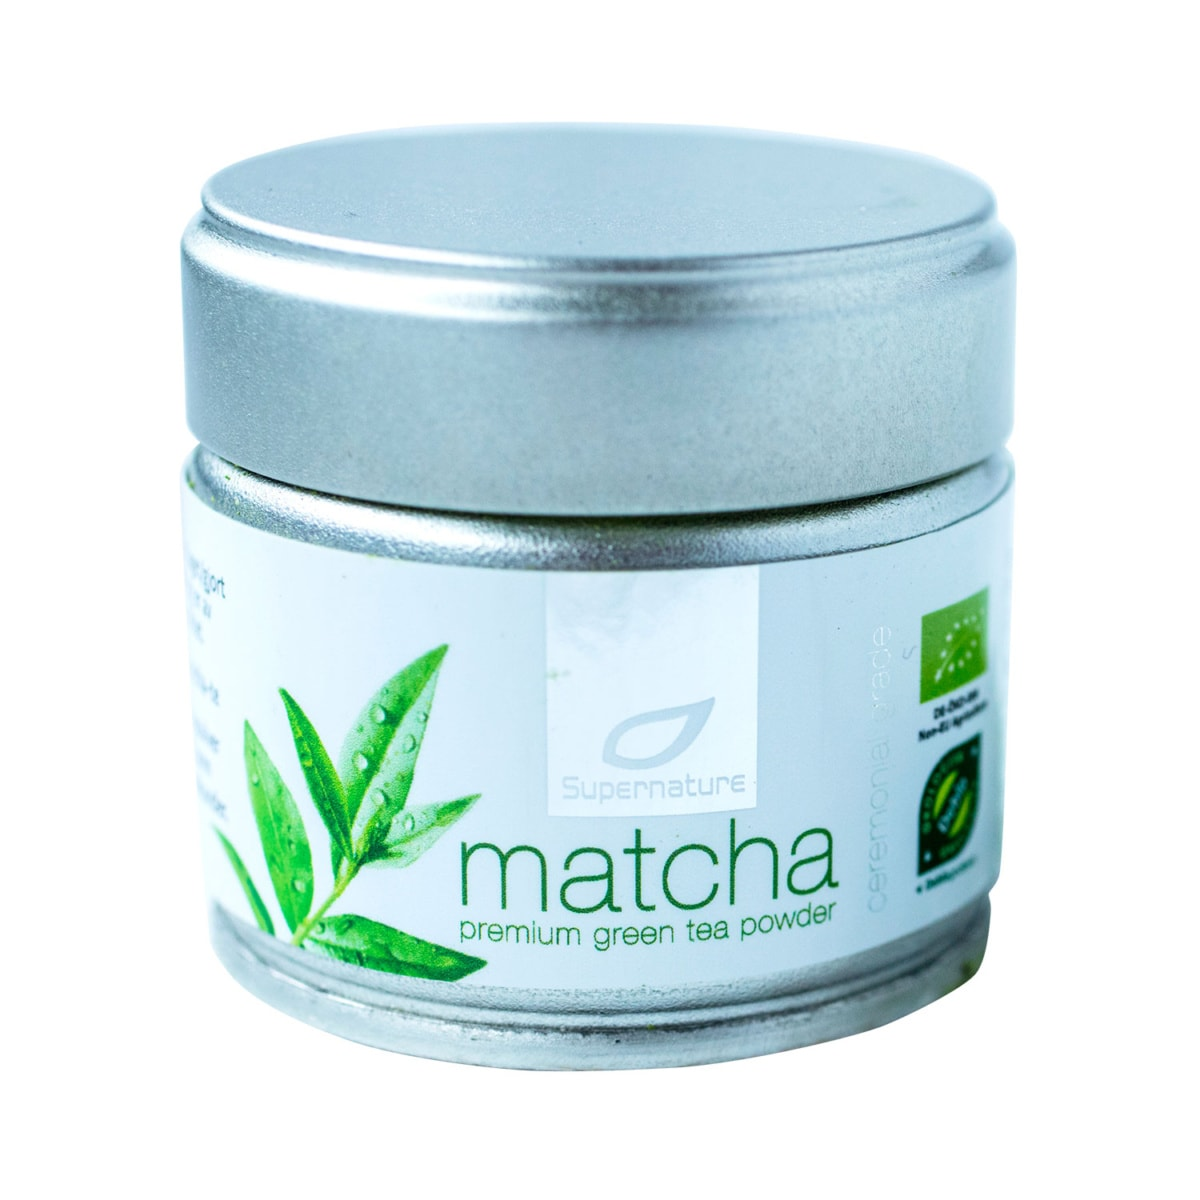 supernature-matcha-te.jpg